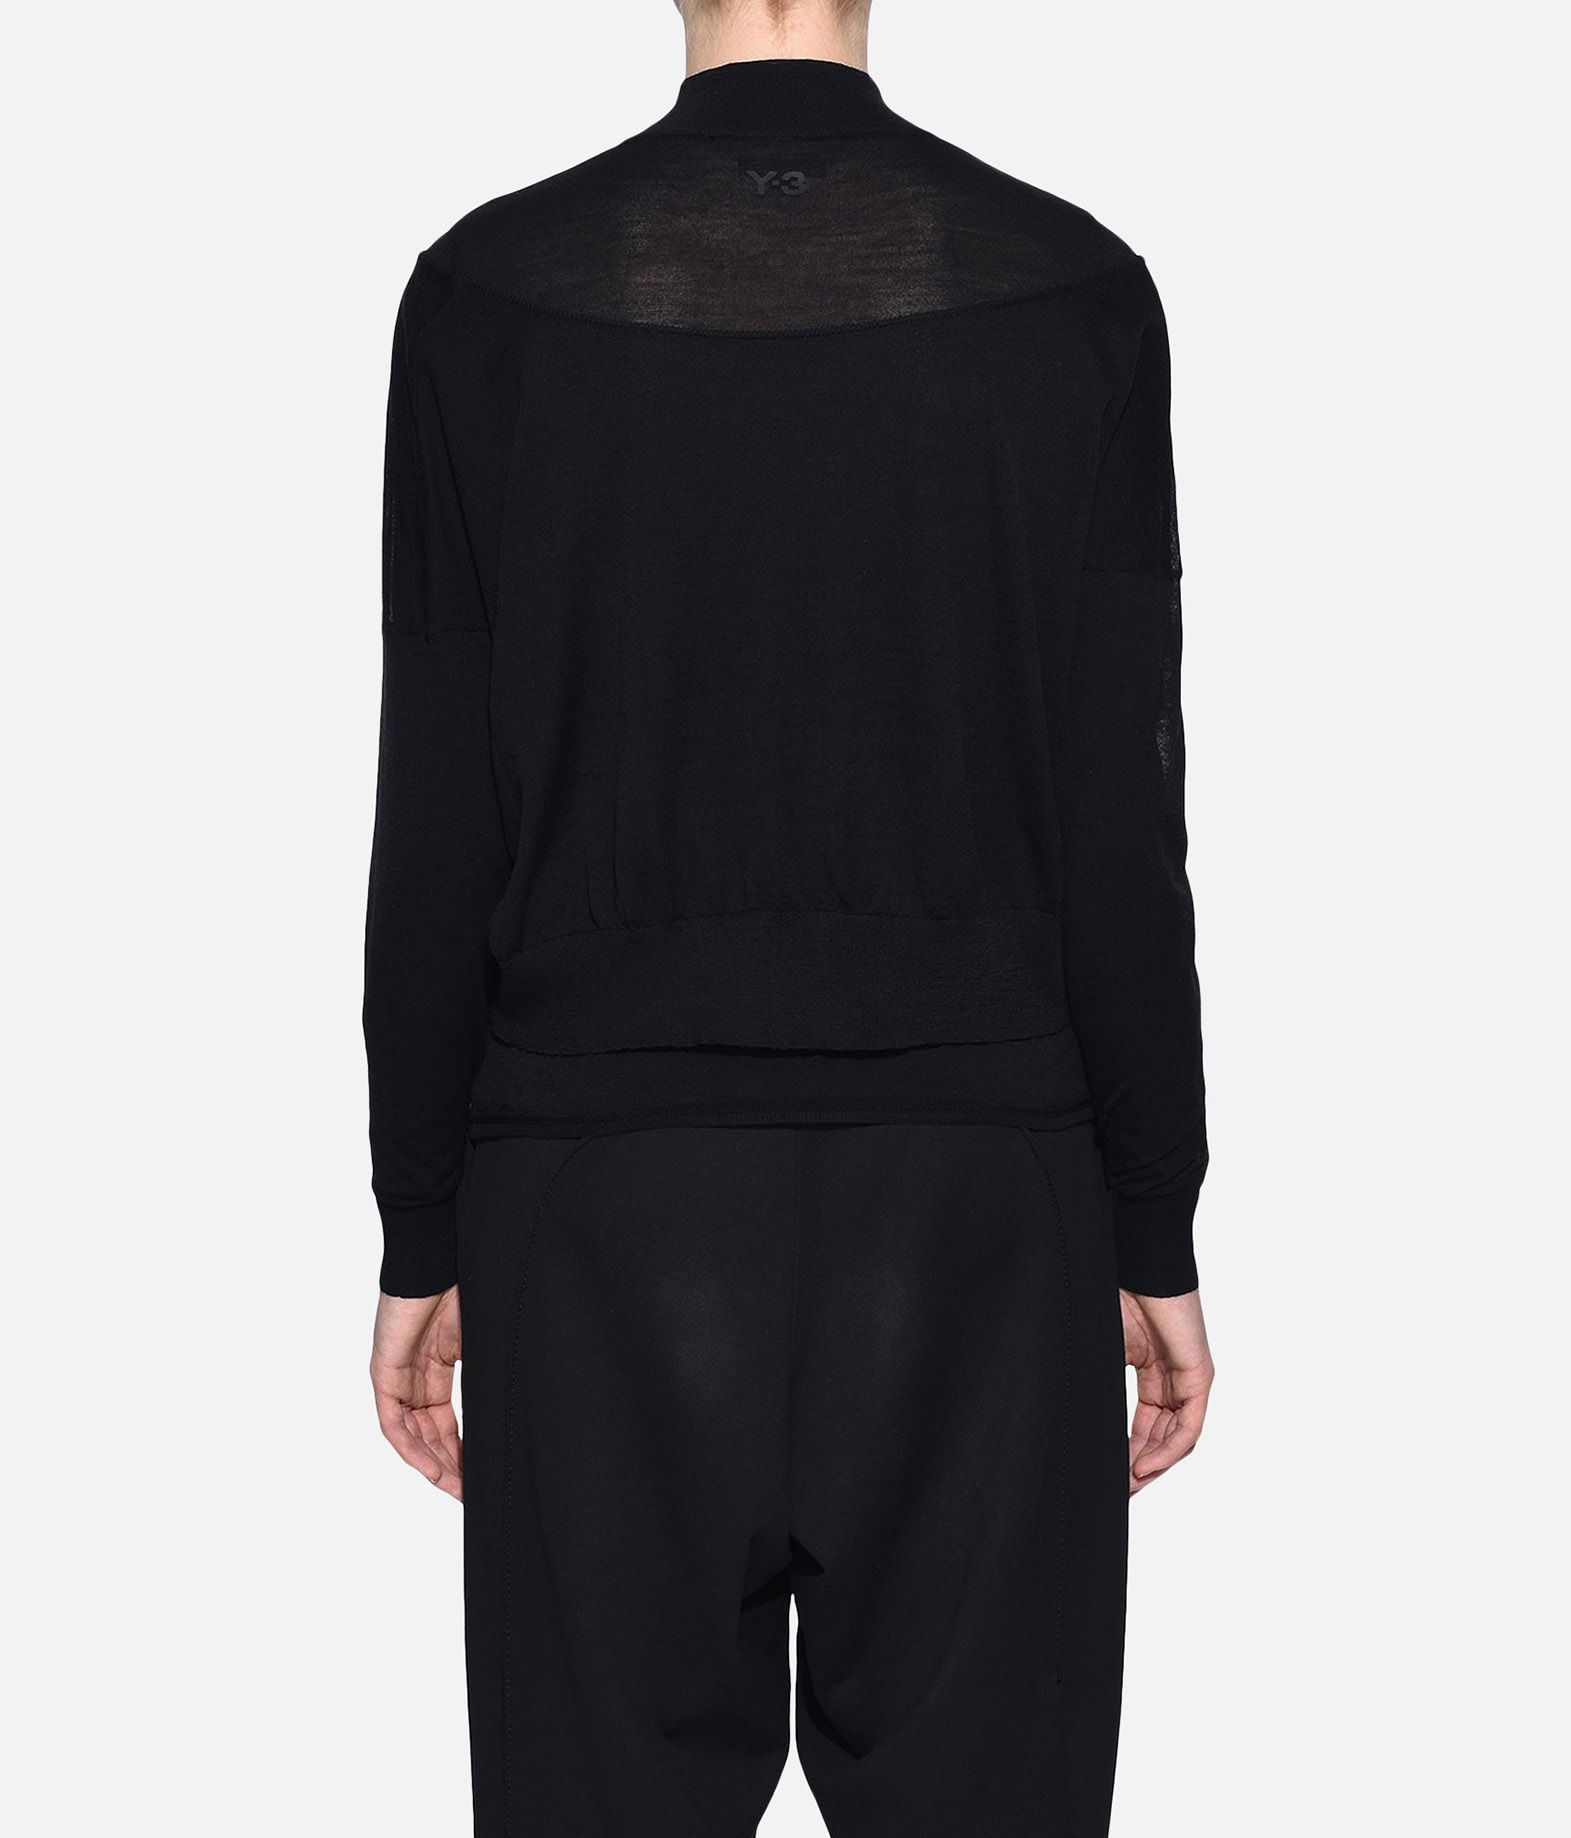 Y-3 Y-3 Layered Knitted Cropped Sweater Long sleeve sweater Woman d